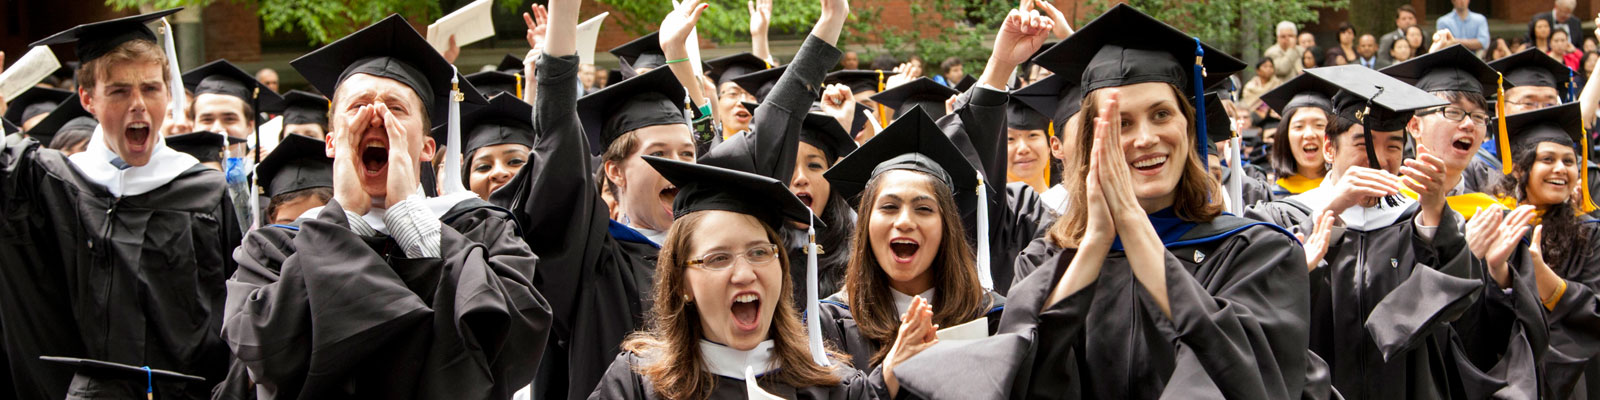 dissertation fellowship for international students Search international undergraduate scholarships, masters scholarships, phd scholarships for international students from developing countries 2017-2018 the doctoral dissertation completion fellowship supports a one-year leave from teaching responsibilities and a stipend up to us$15,000 to.